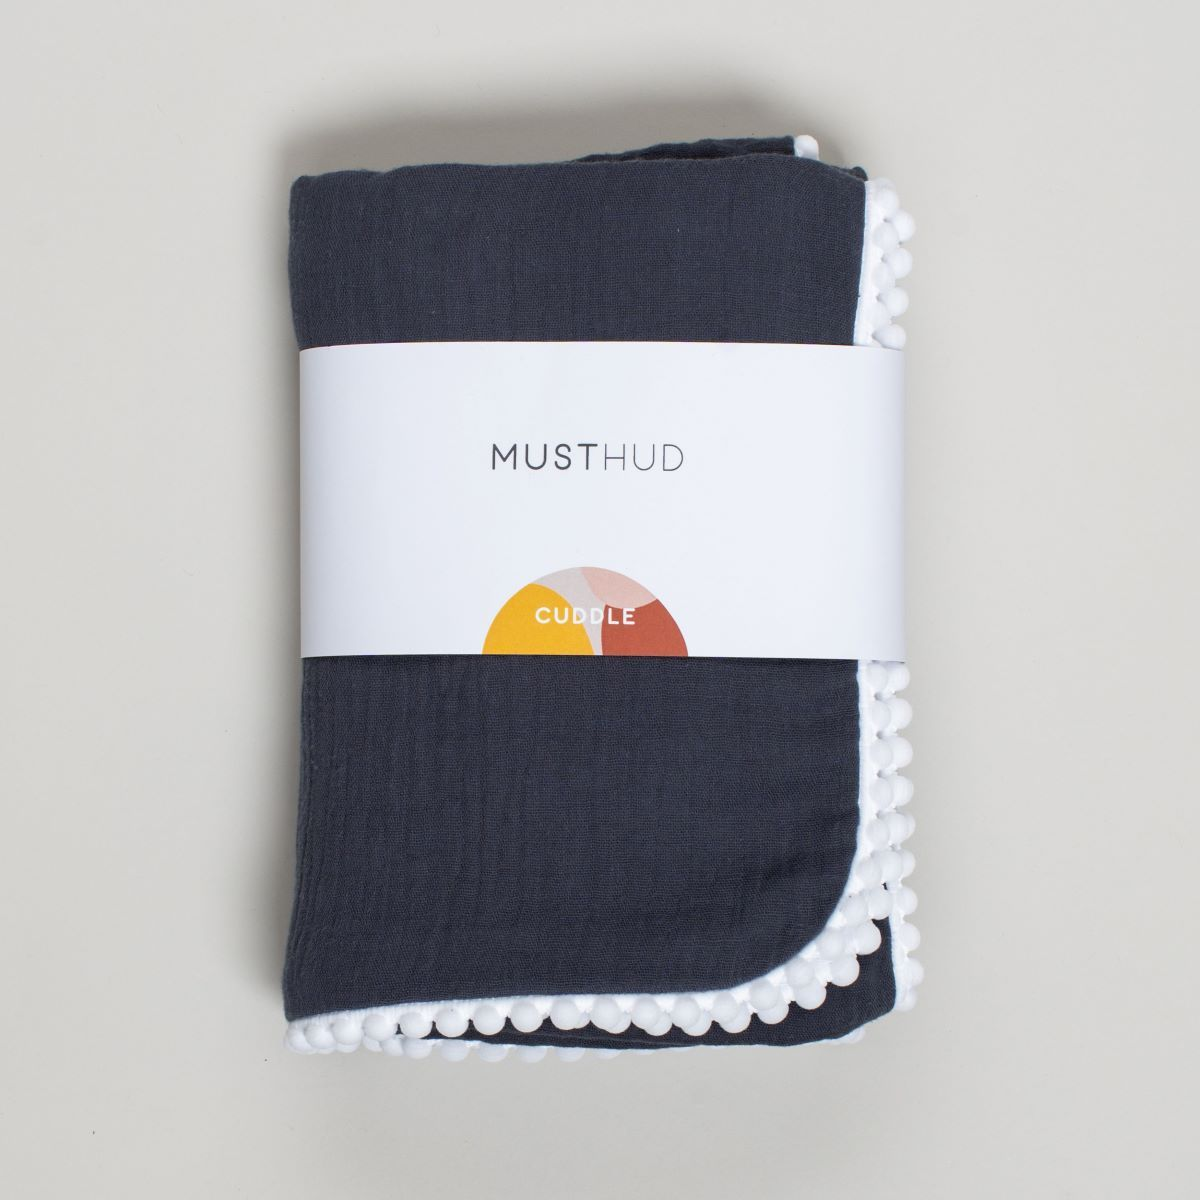 Musthud Cuddle Blanket in Charcoal Blue